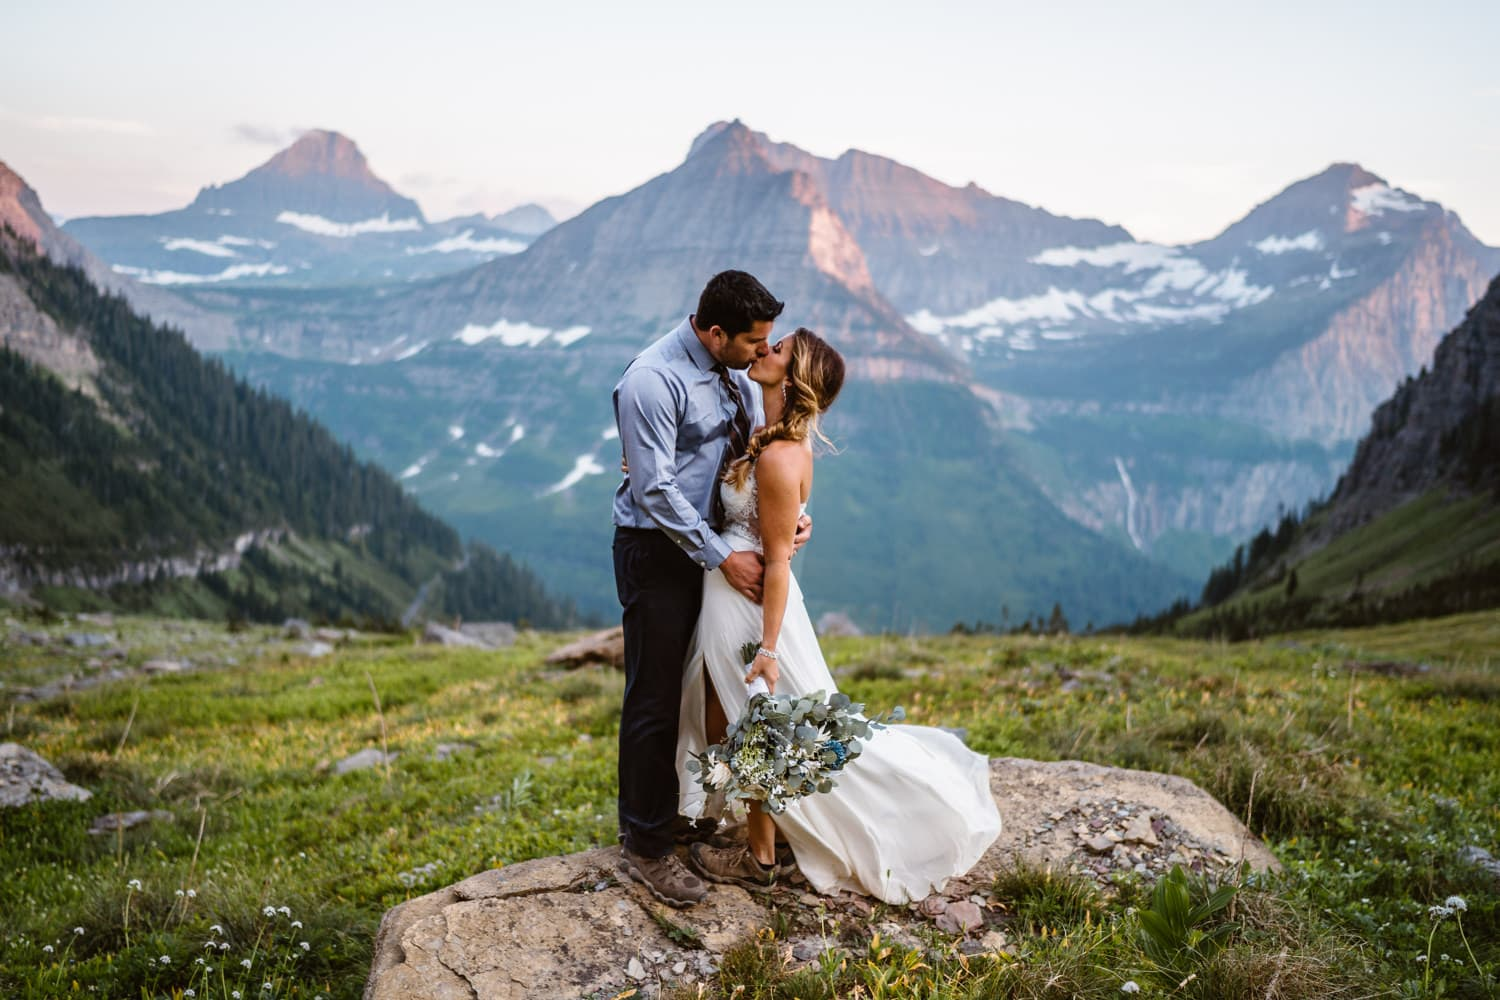 Glacier National Park Elopement Guide & Packages Bride and Groom